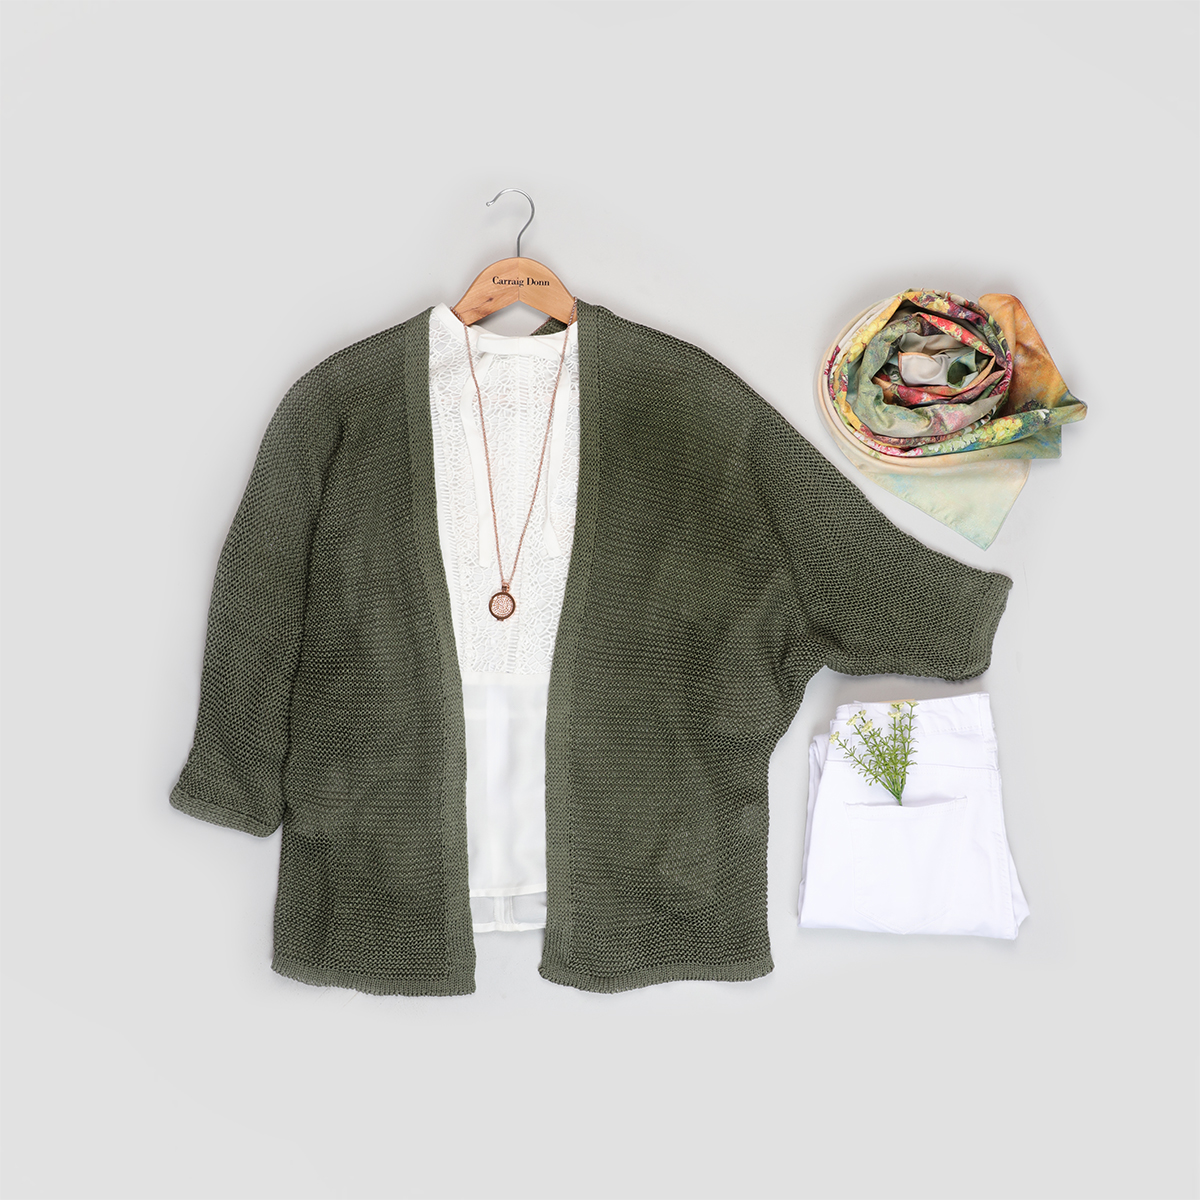 St. Patrick's Day style from @CarraigDonn